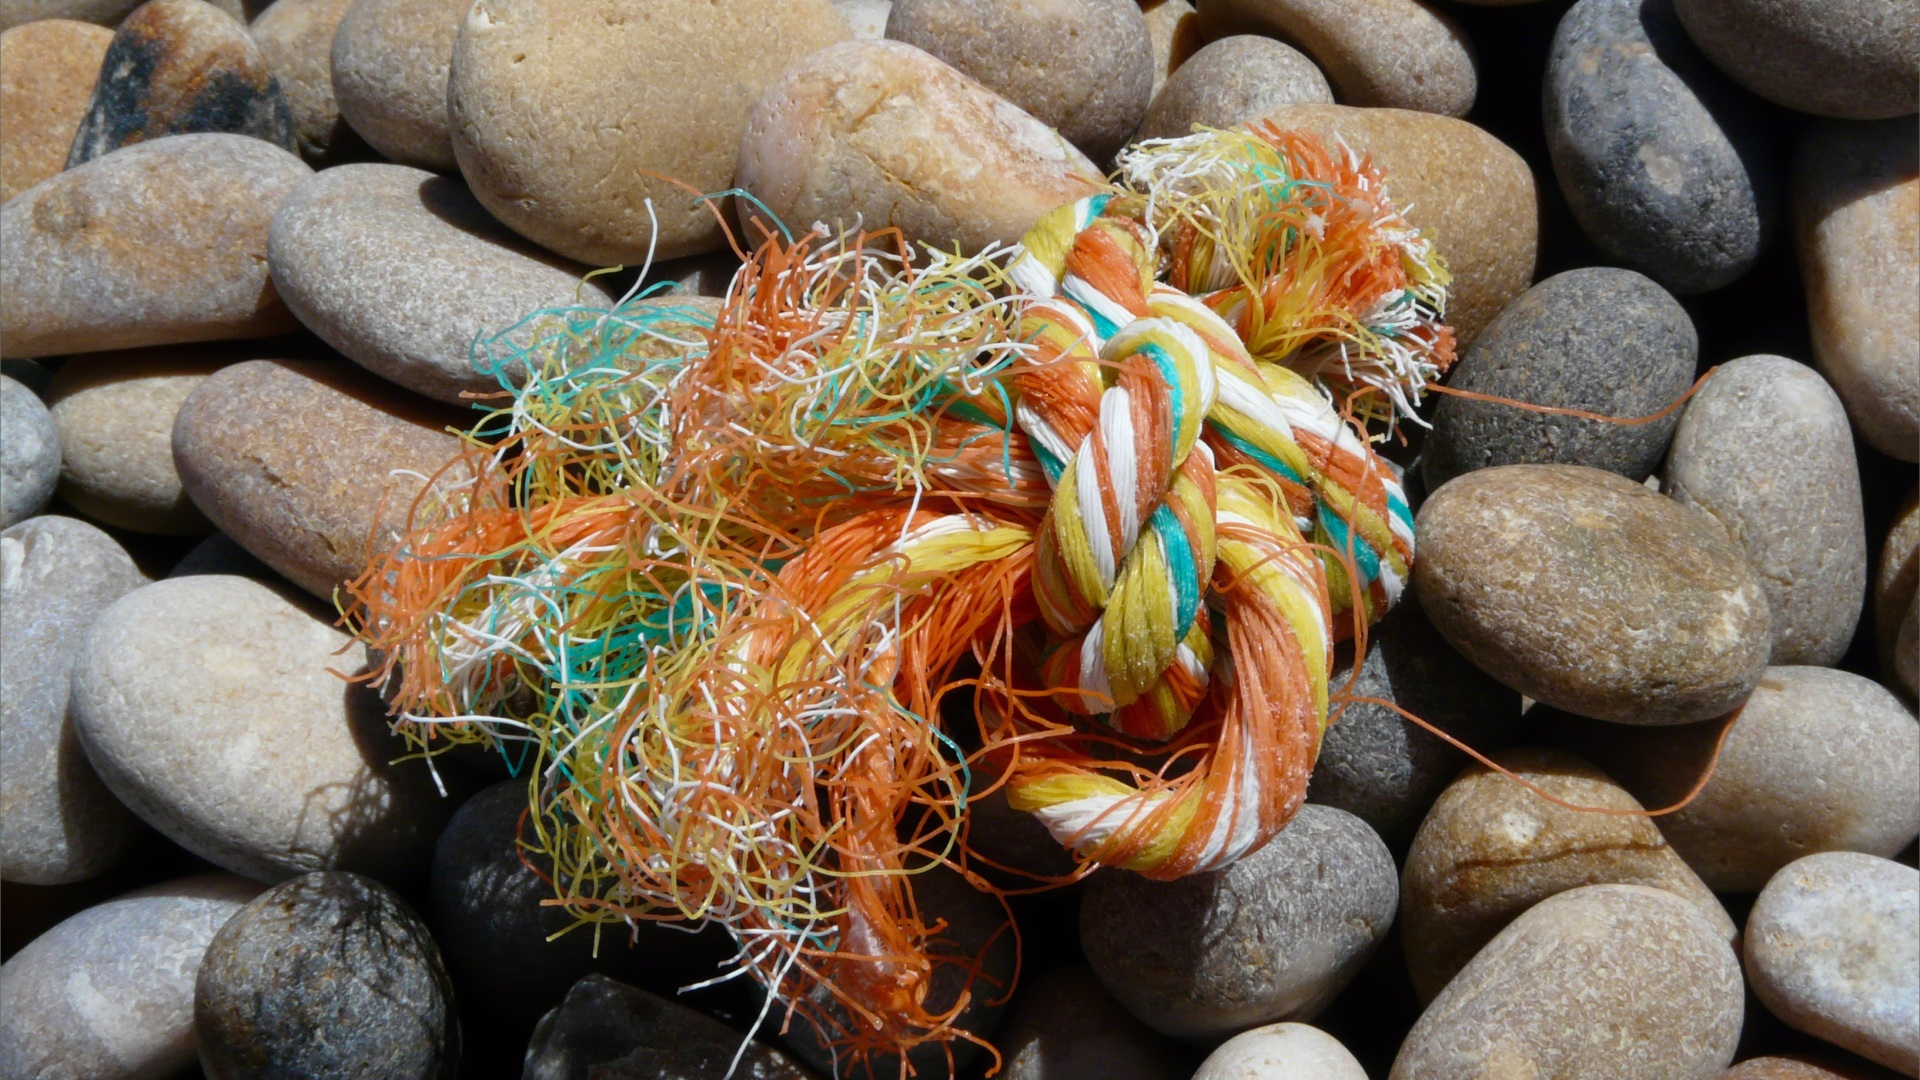 Orange multicolour knotted rope washed up on a pebble beach